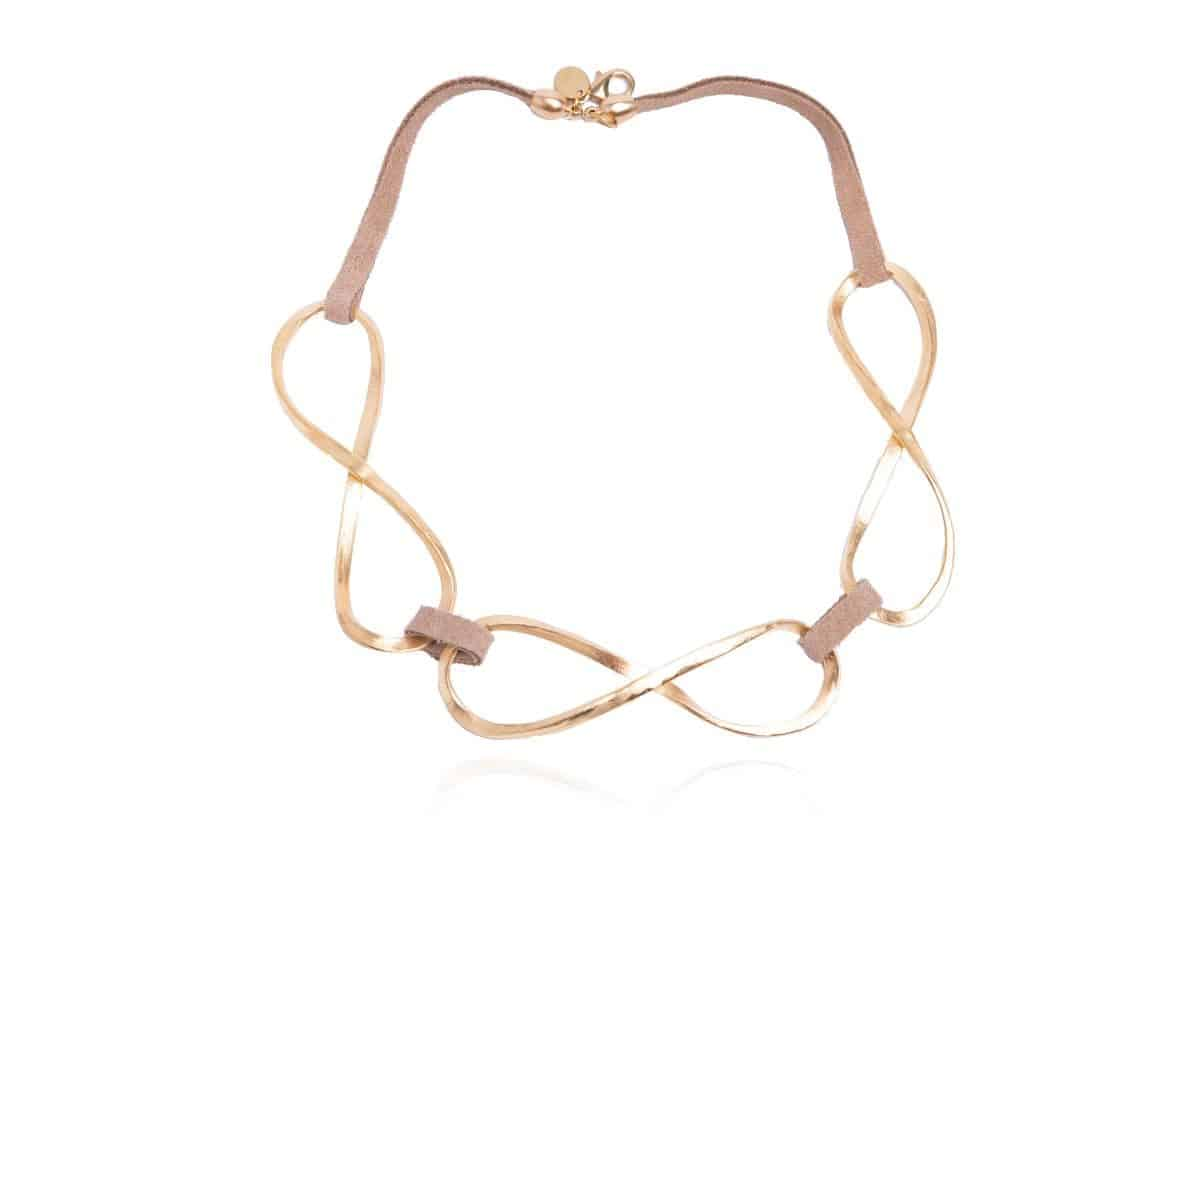 Infinity short camel leather necklace with three large metallic and gold-plated pieces in the shape of an infinity